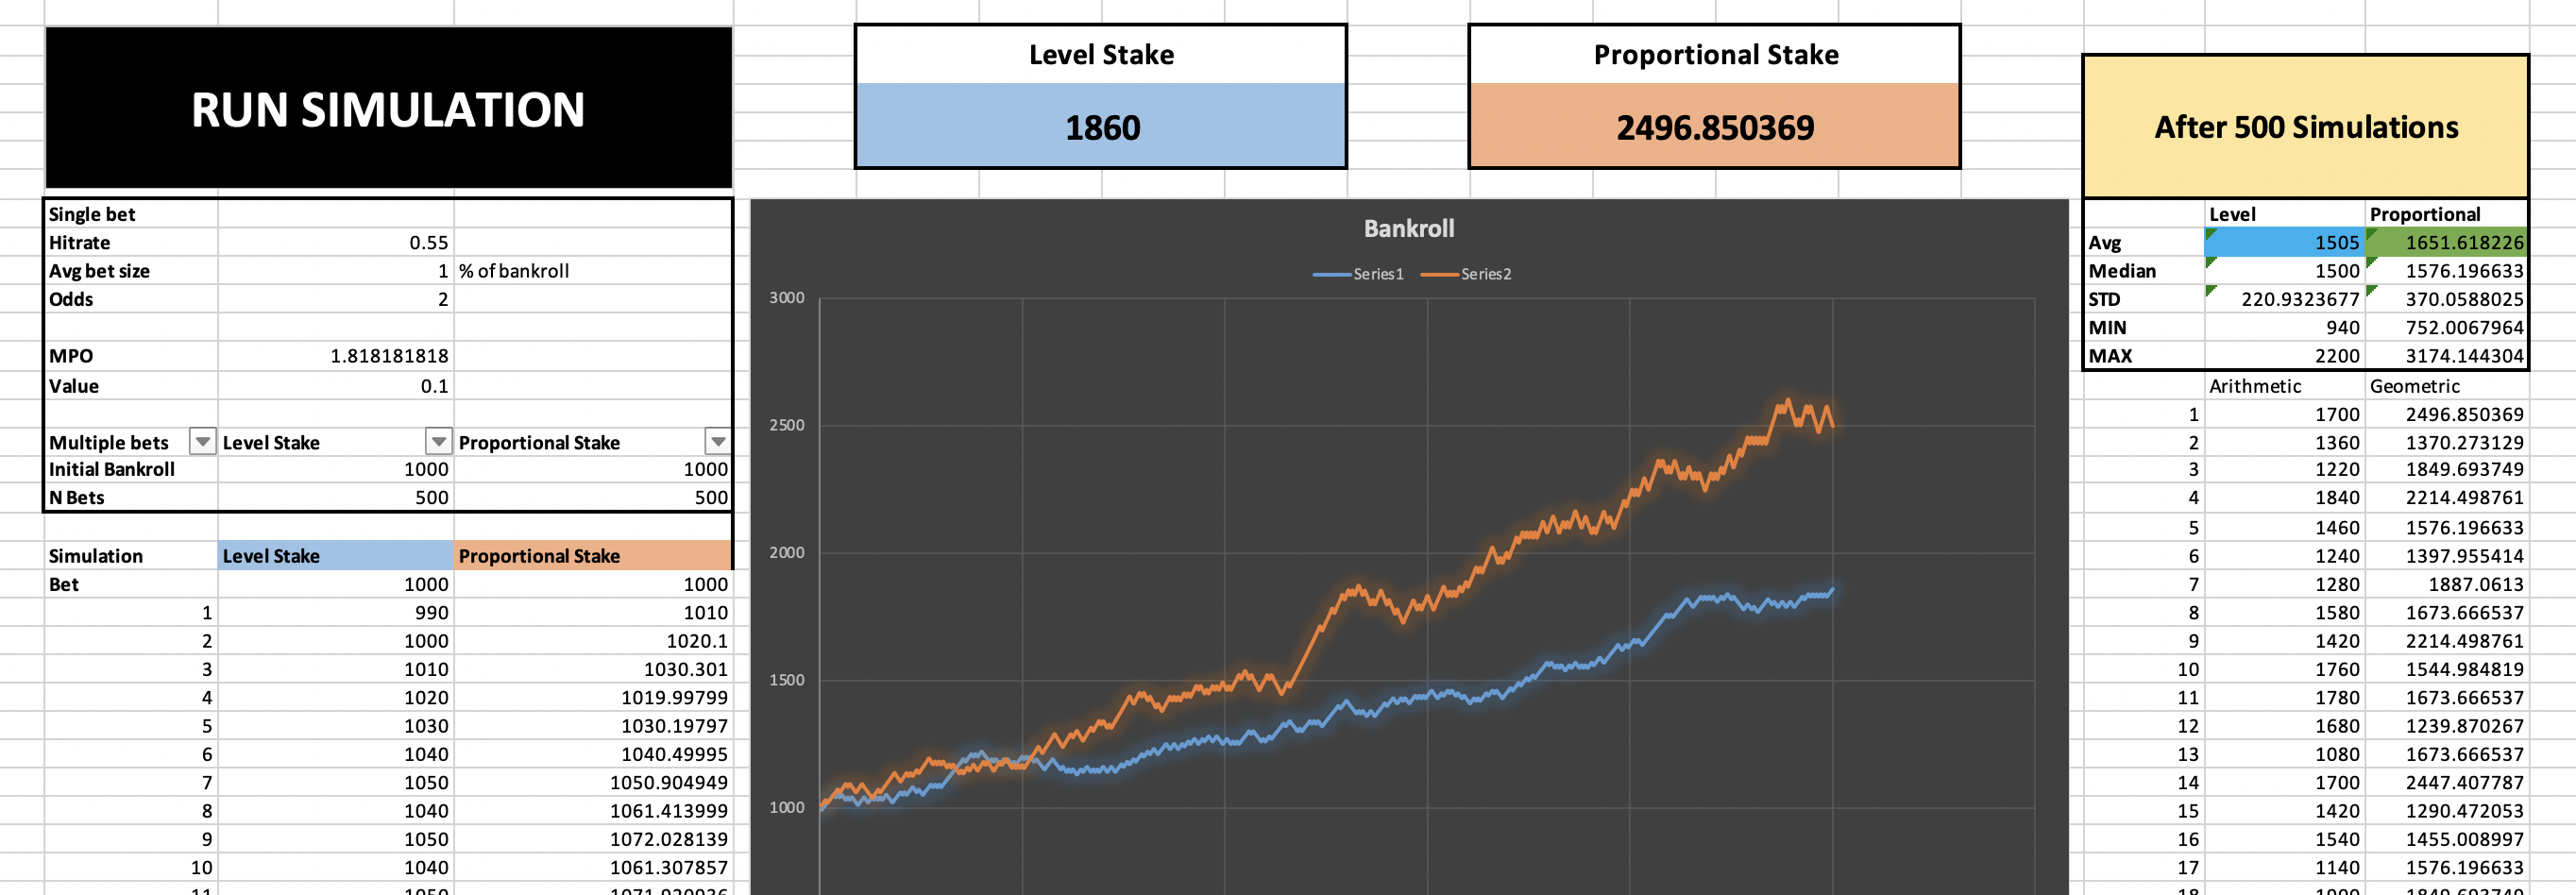 Preview Of The Stake Simulation Calculator